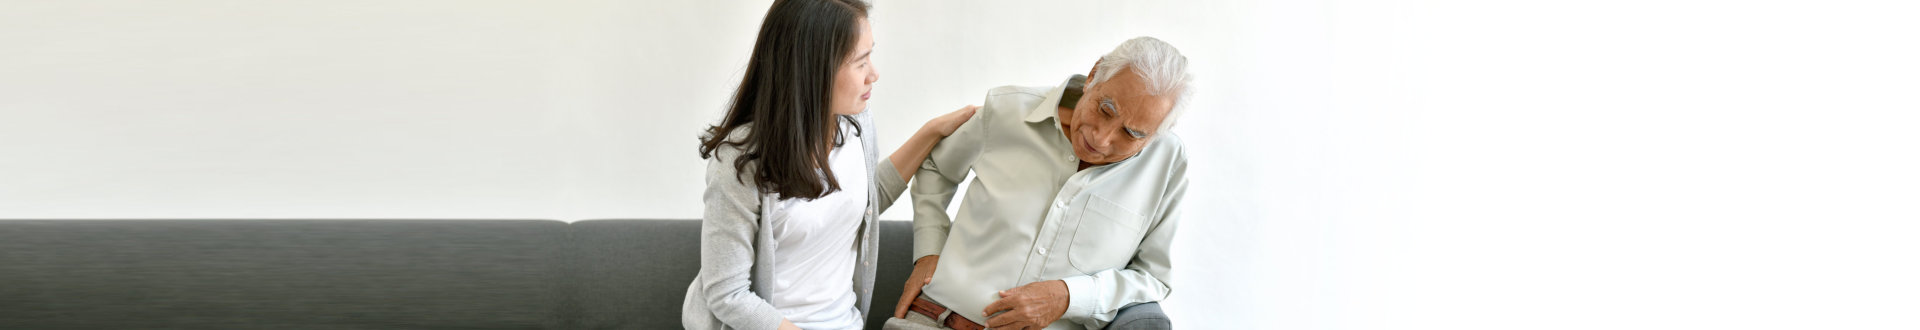 senior man in pain with senior woman on his side